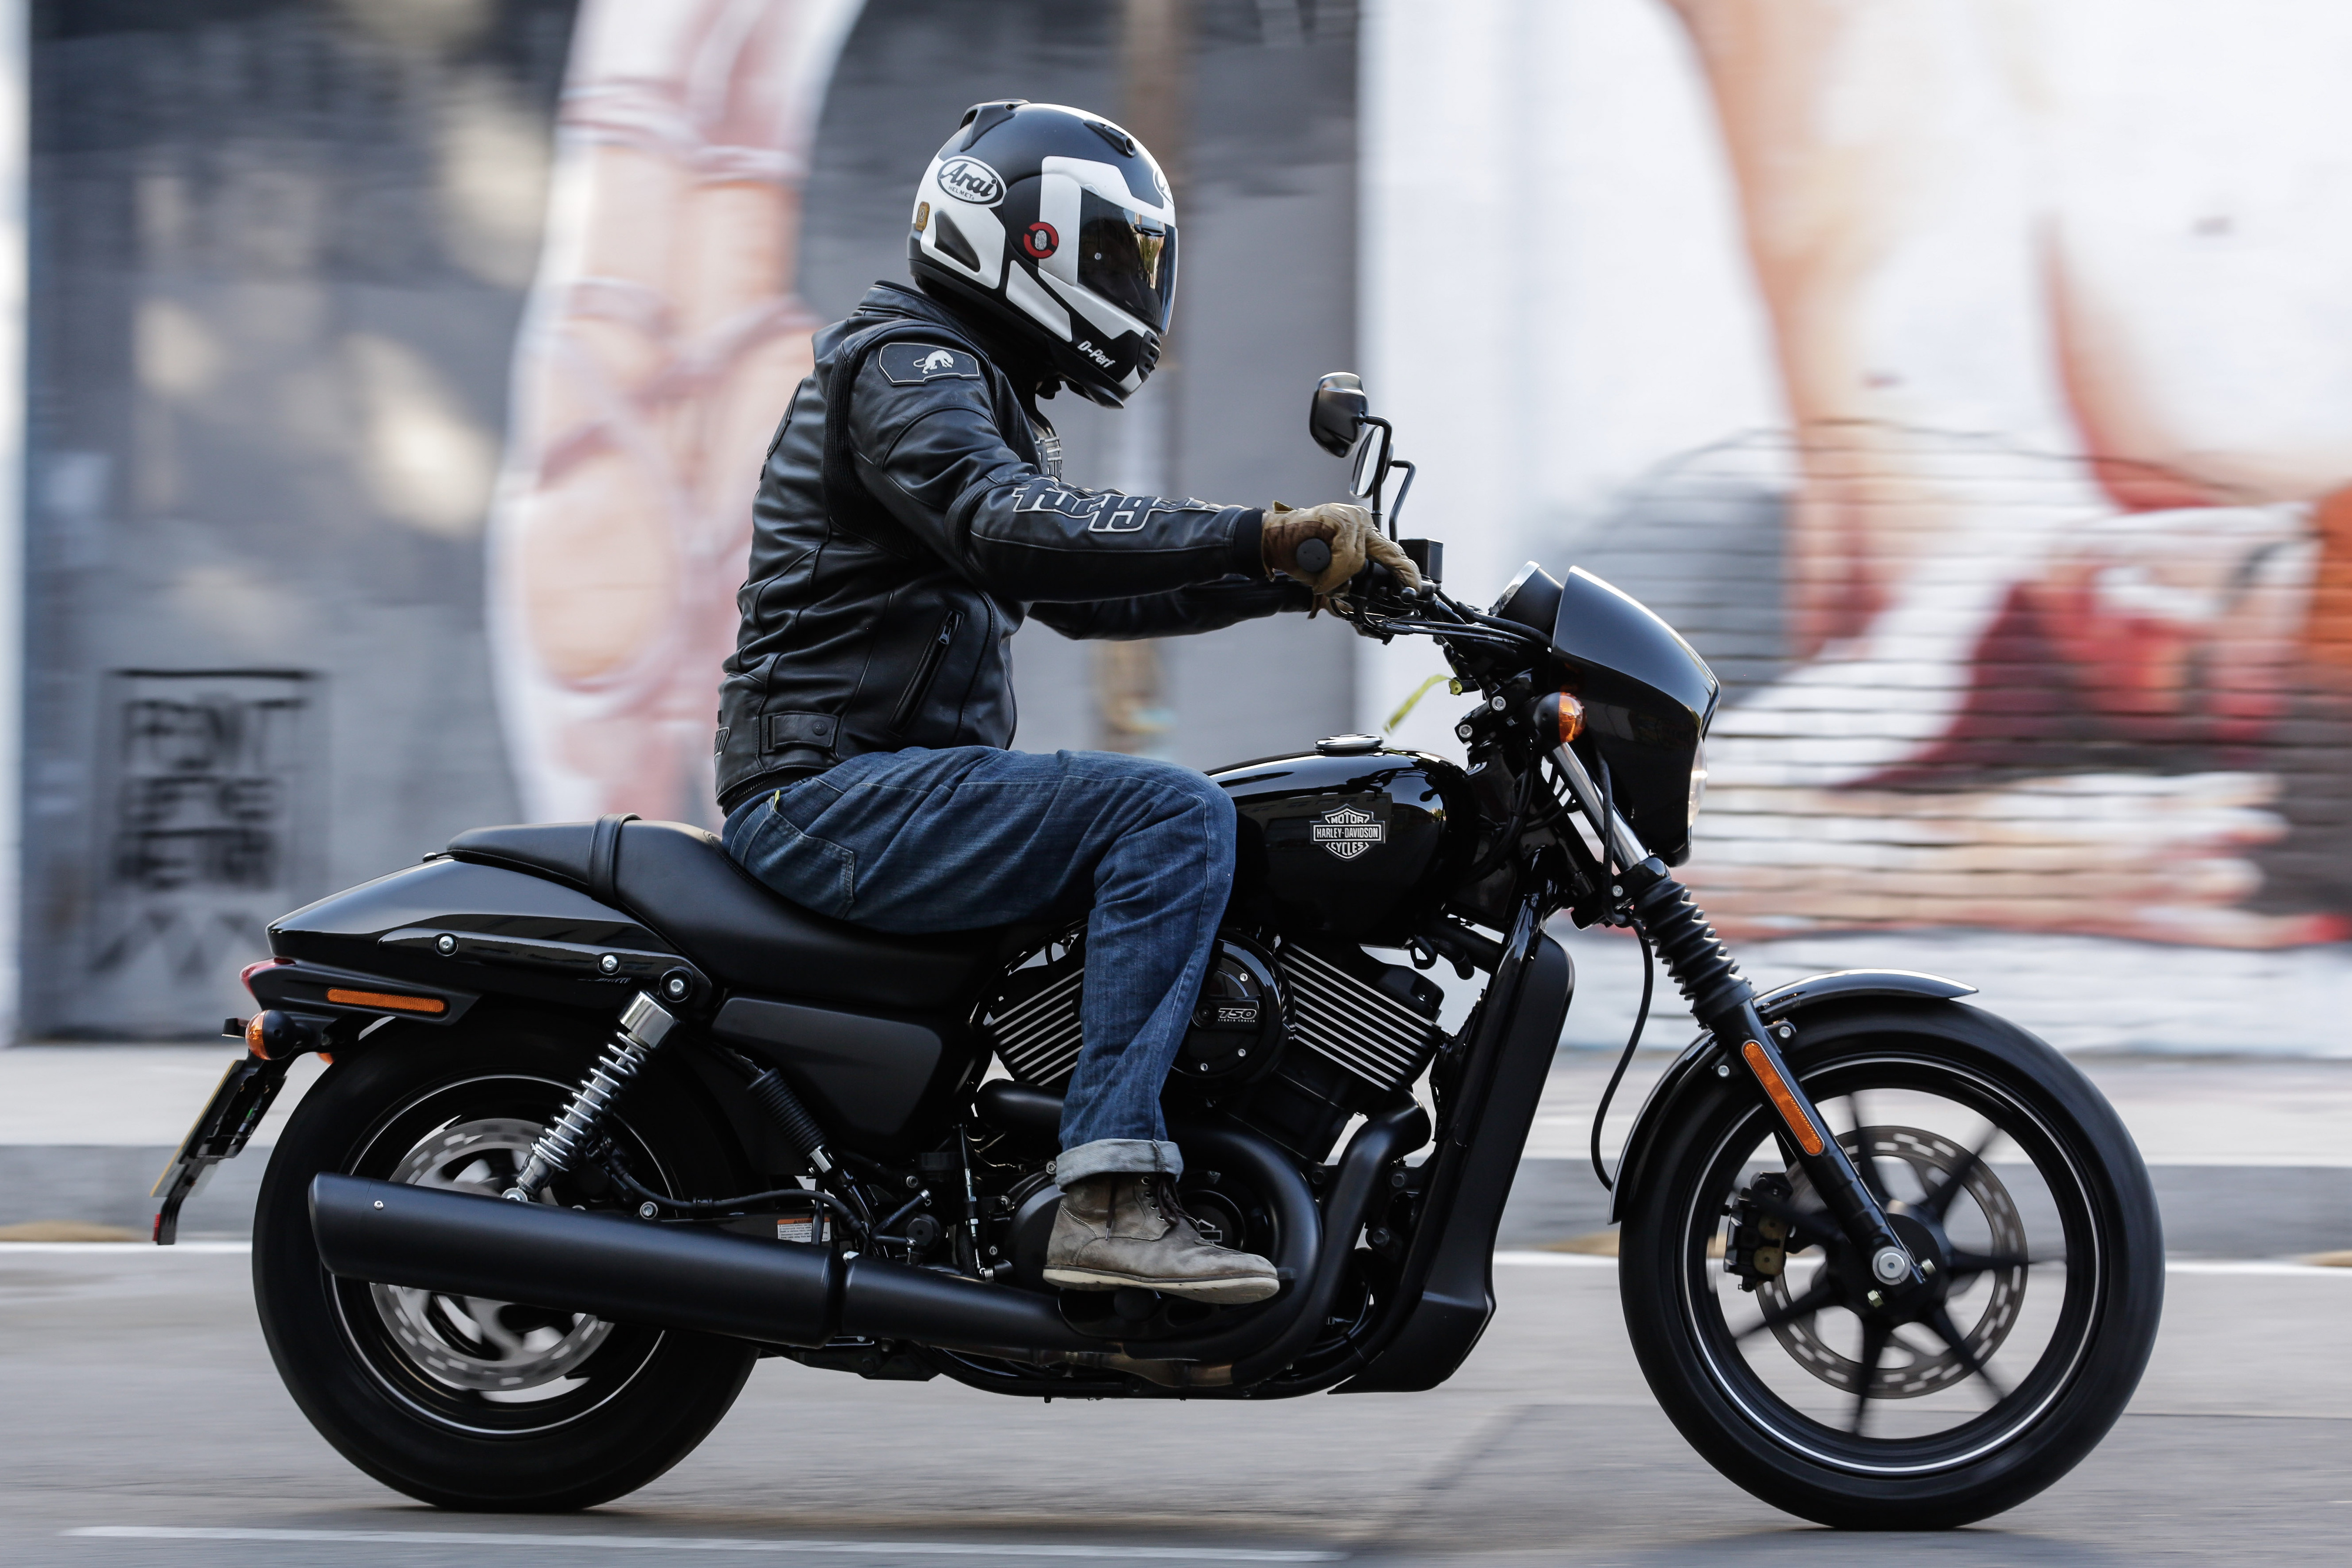 First Ride Harley Davidson Street 750 Review on harley dyna glide specifications